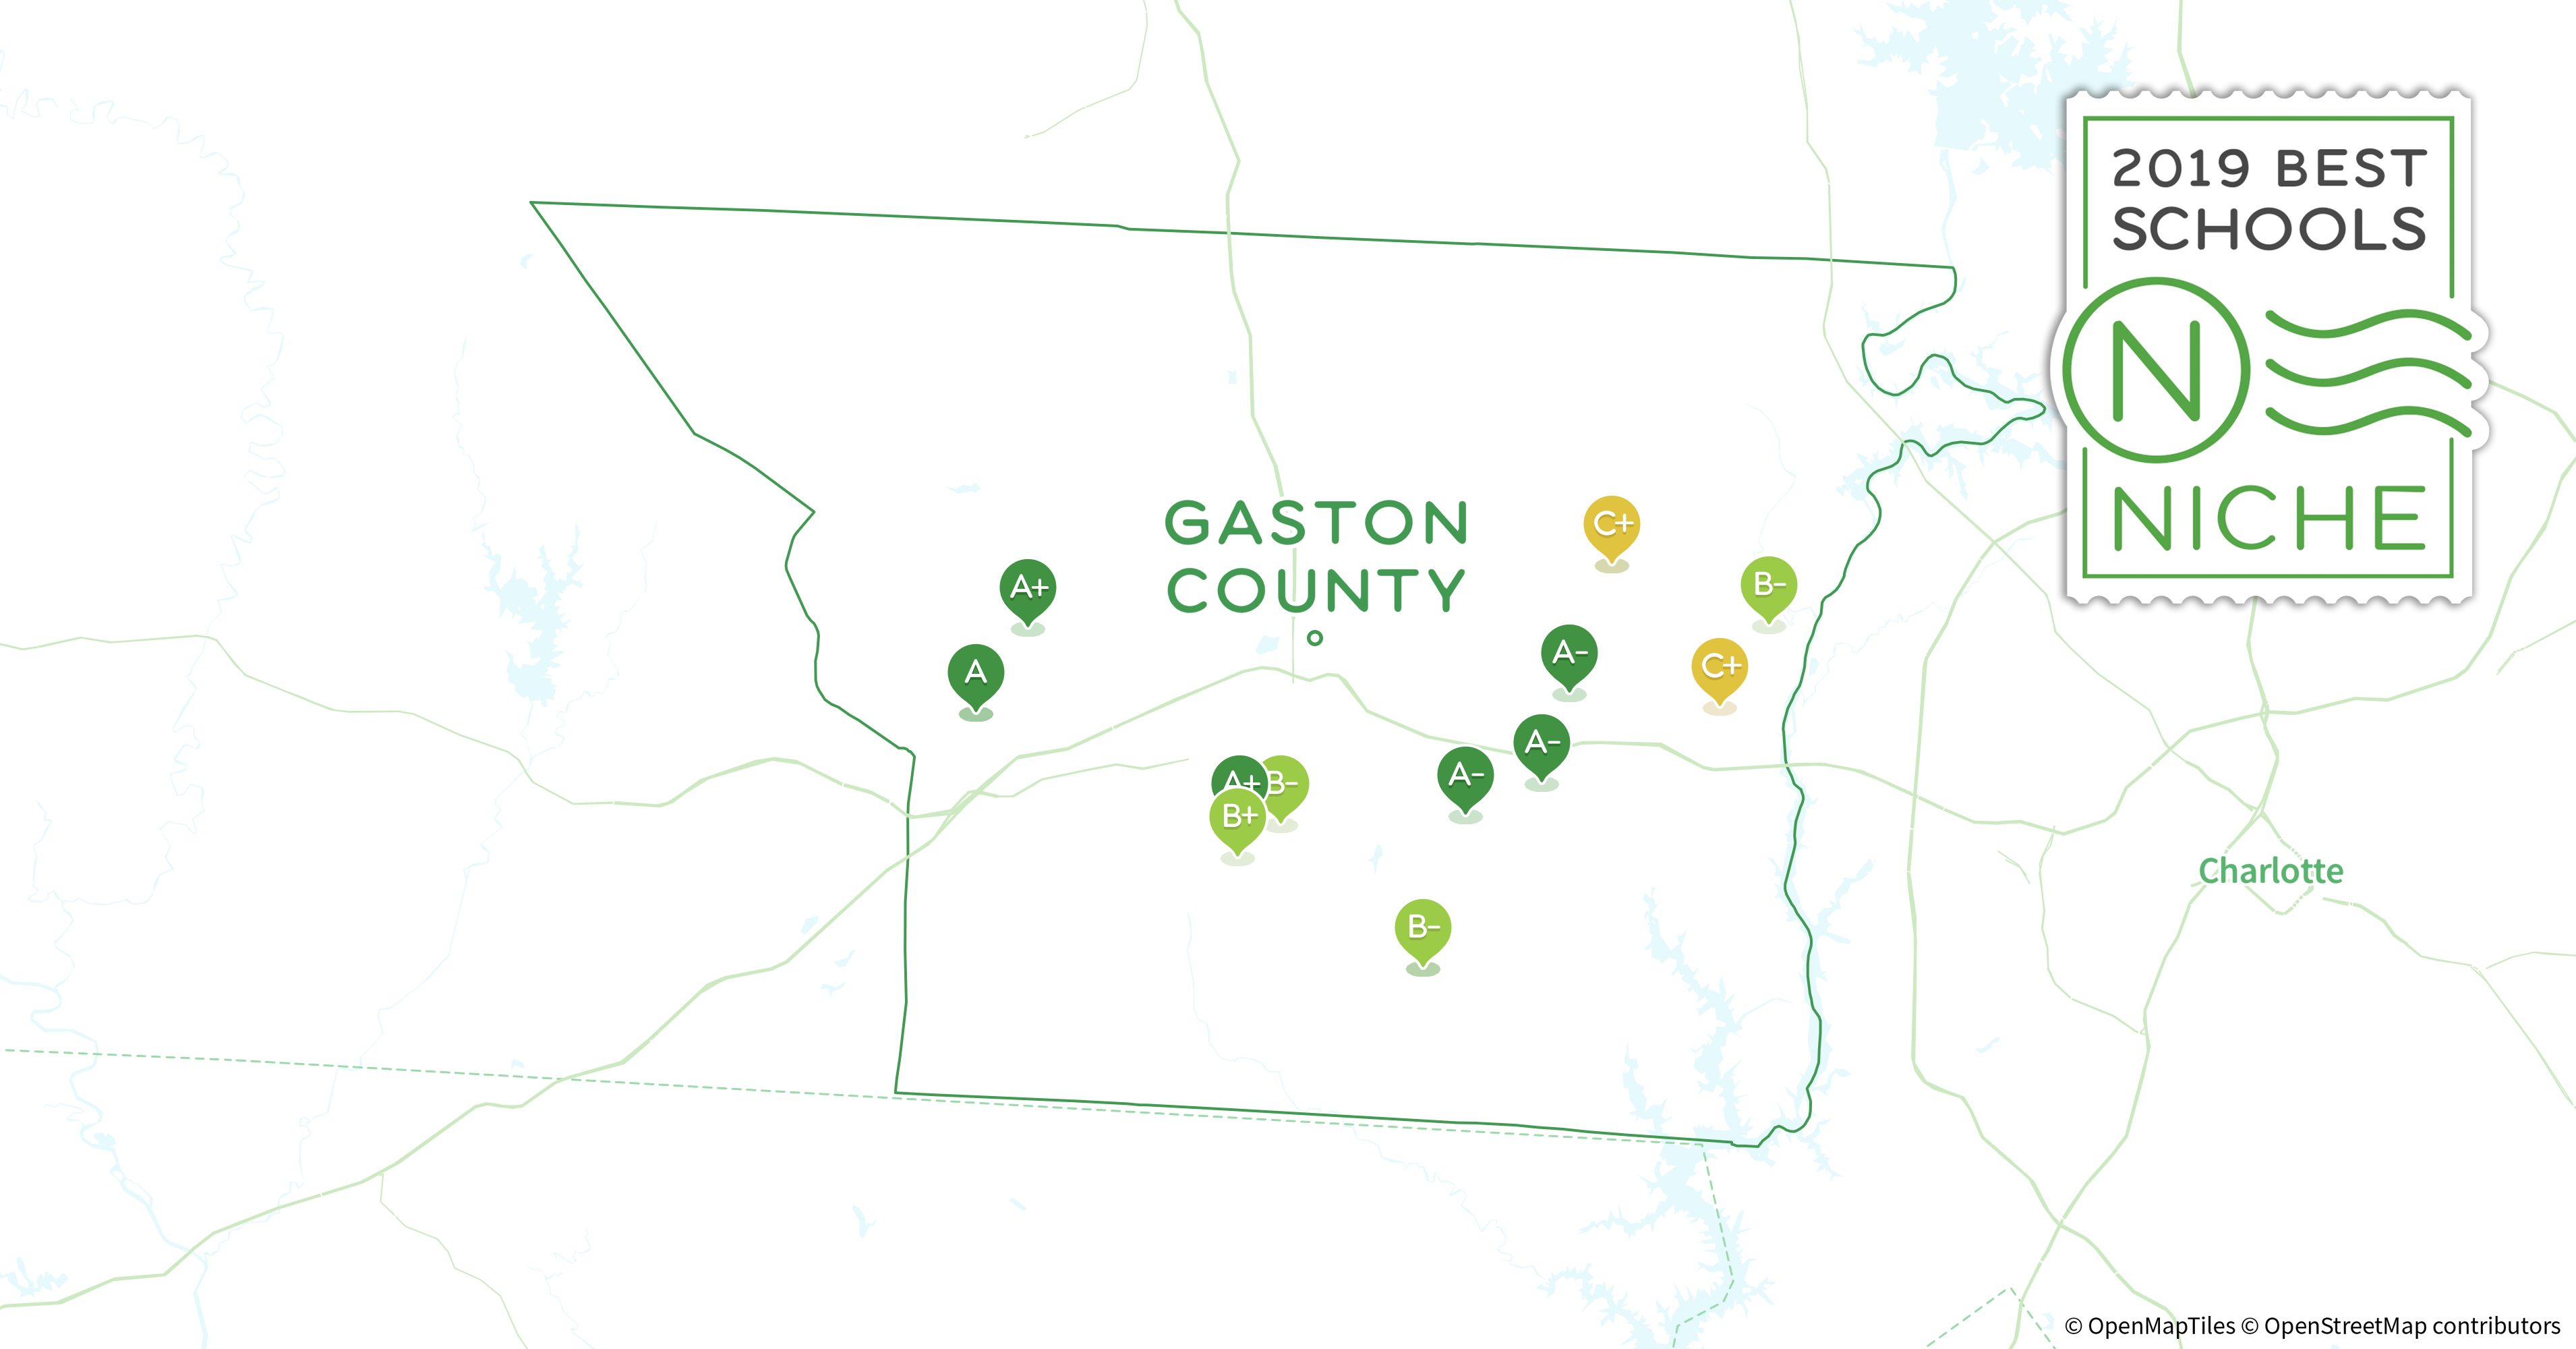 Gaston County Public Elementary s with the Best ... on mecklenburg nc map, gastonia nc map, ranlo nc map, north carolina nc map, mountain view nc map, albemarle nc map, north carolina river basin map, pickens county sc map, mooresville nc map, yadkin river nc map, mountain island lake nc map, wadesboro nc map, lake gaston map, gastonia north carolina map, hidden valley nc map, united states nc map, charlotte nc city limits map, gastonia city map, belmont north carolina map, southwest charlotte nc map,